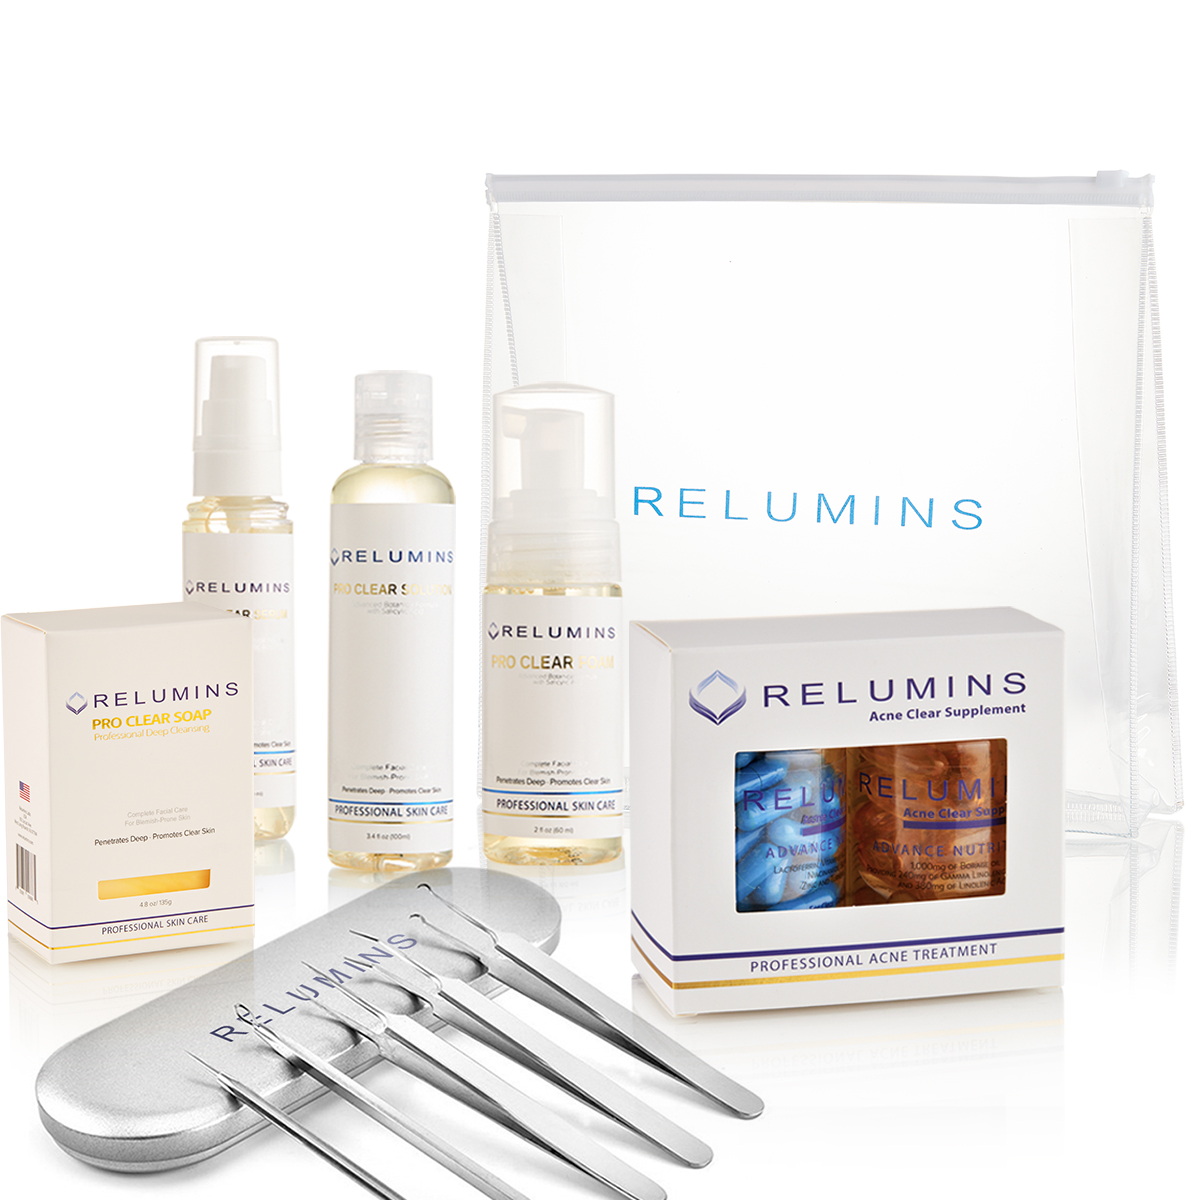 Relumins Professional Clear Set - with all the products you need for clear skin!!!! Plus FREE Travel Bag!